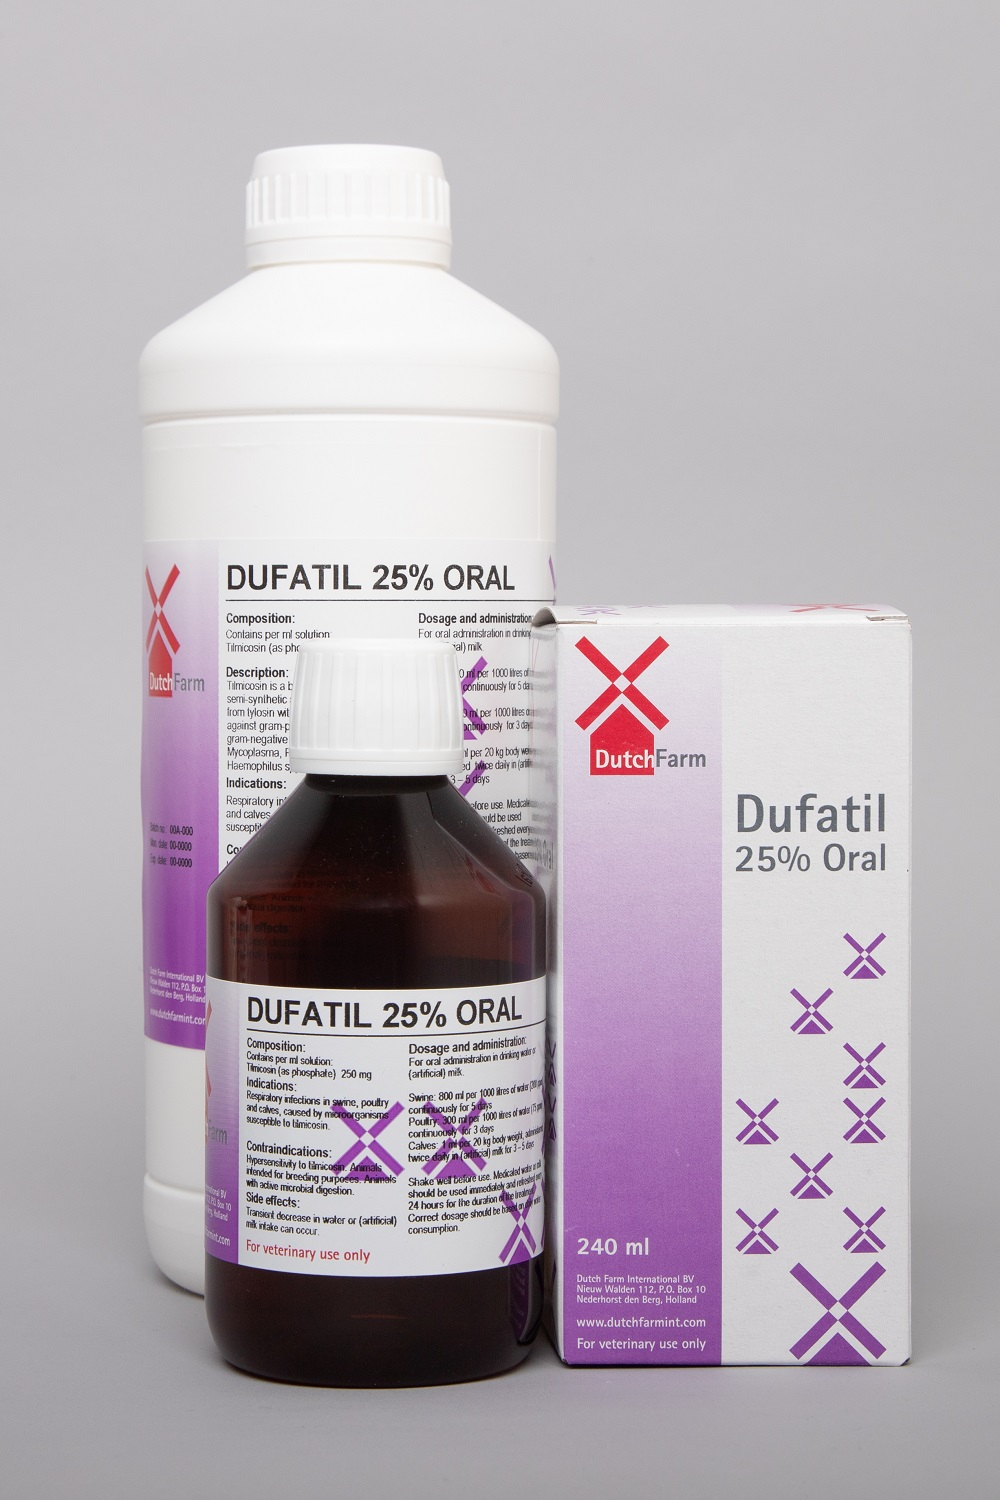 Dufatil 25% Oral